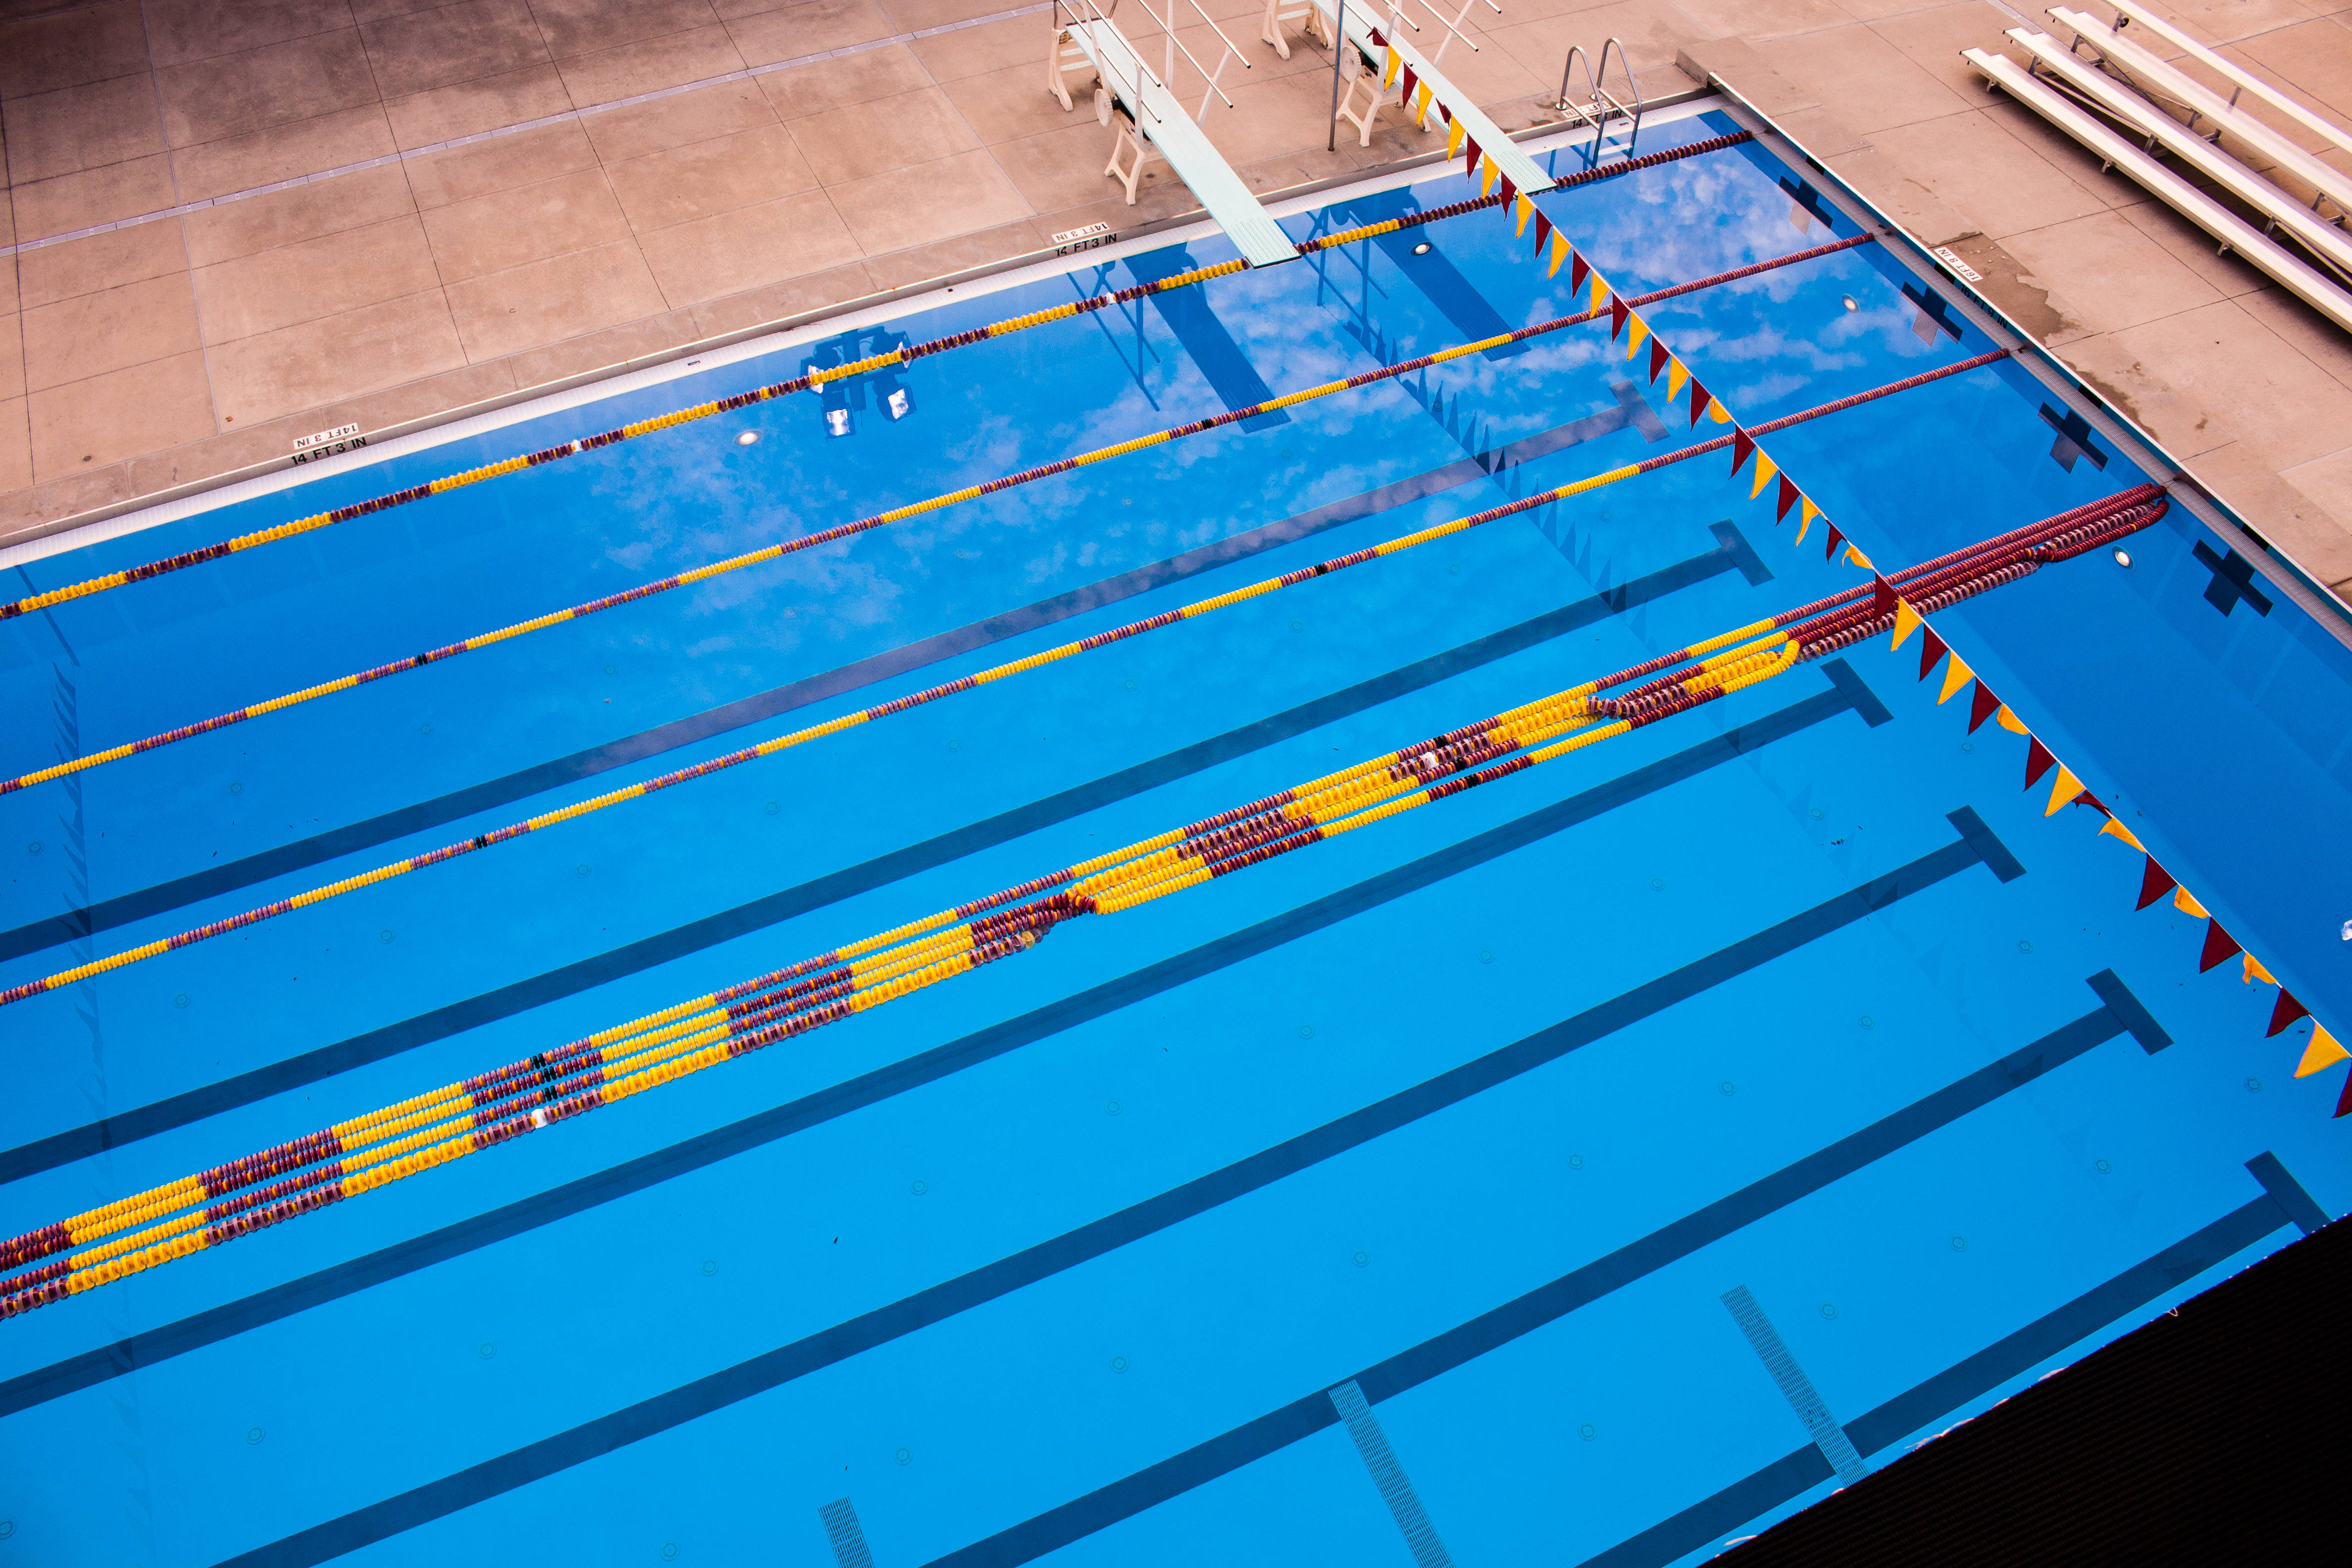 The diving well is 16 feet deep and can fit eight lanes.